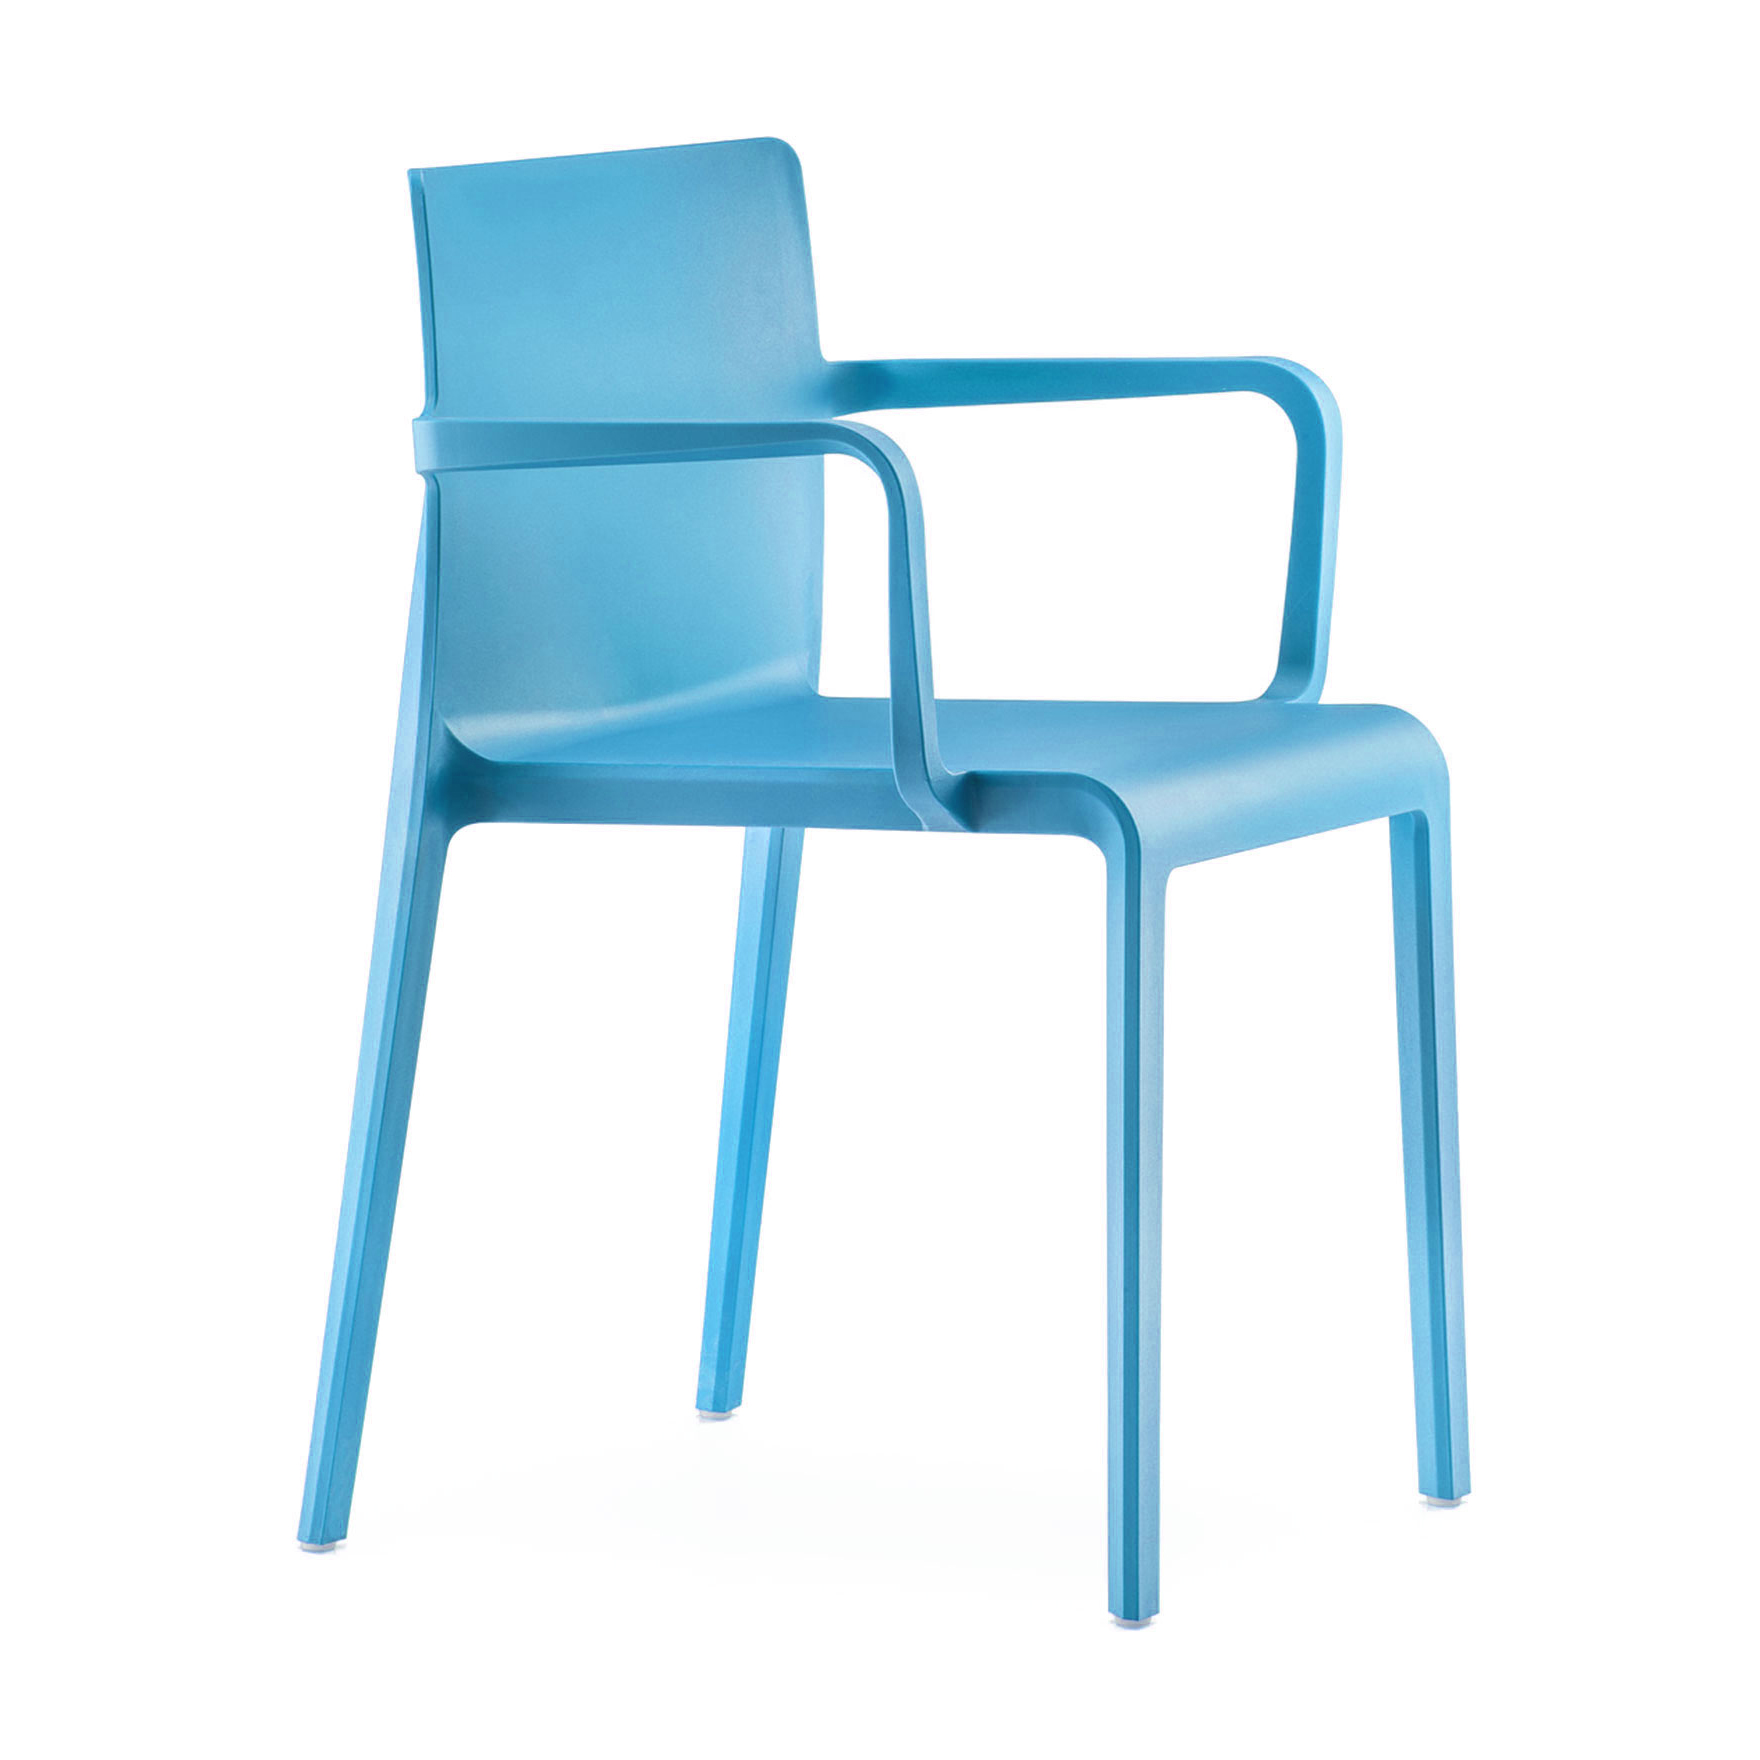 Florida Seating VOLT-A / BLUE chair, armchair, stacking, outdoor